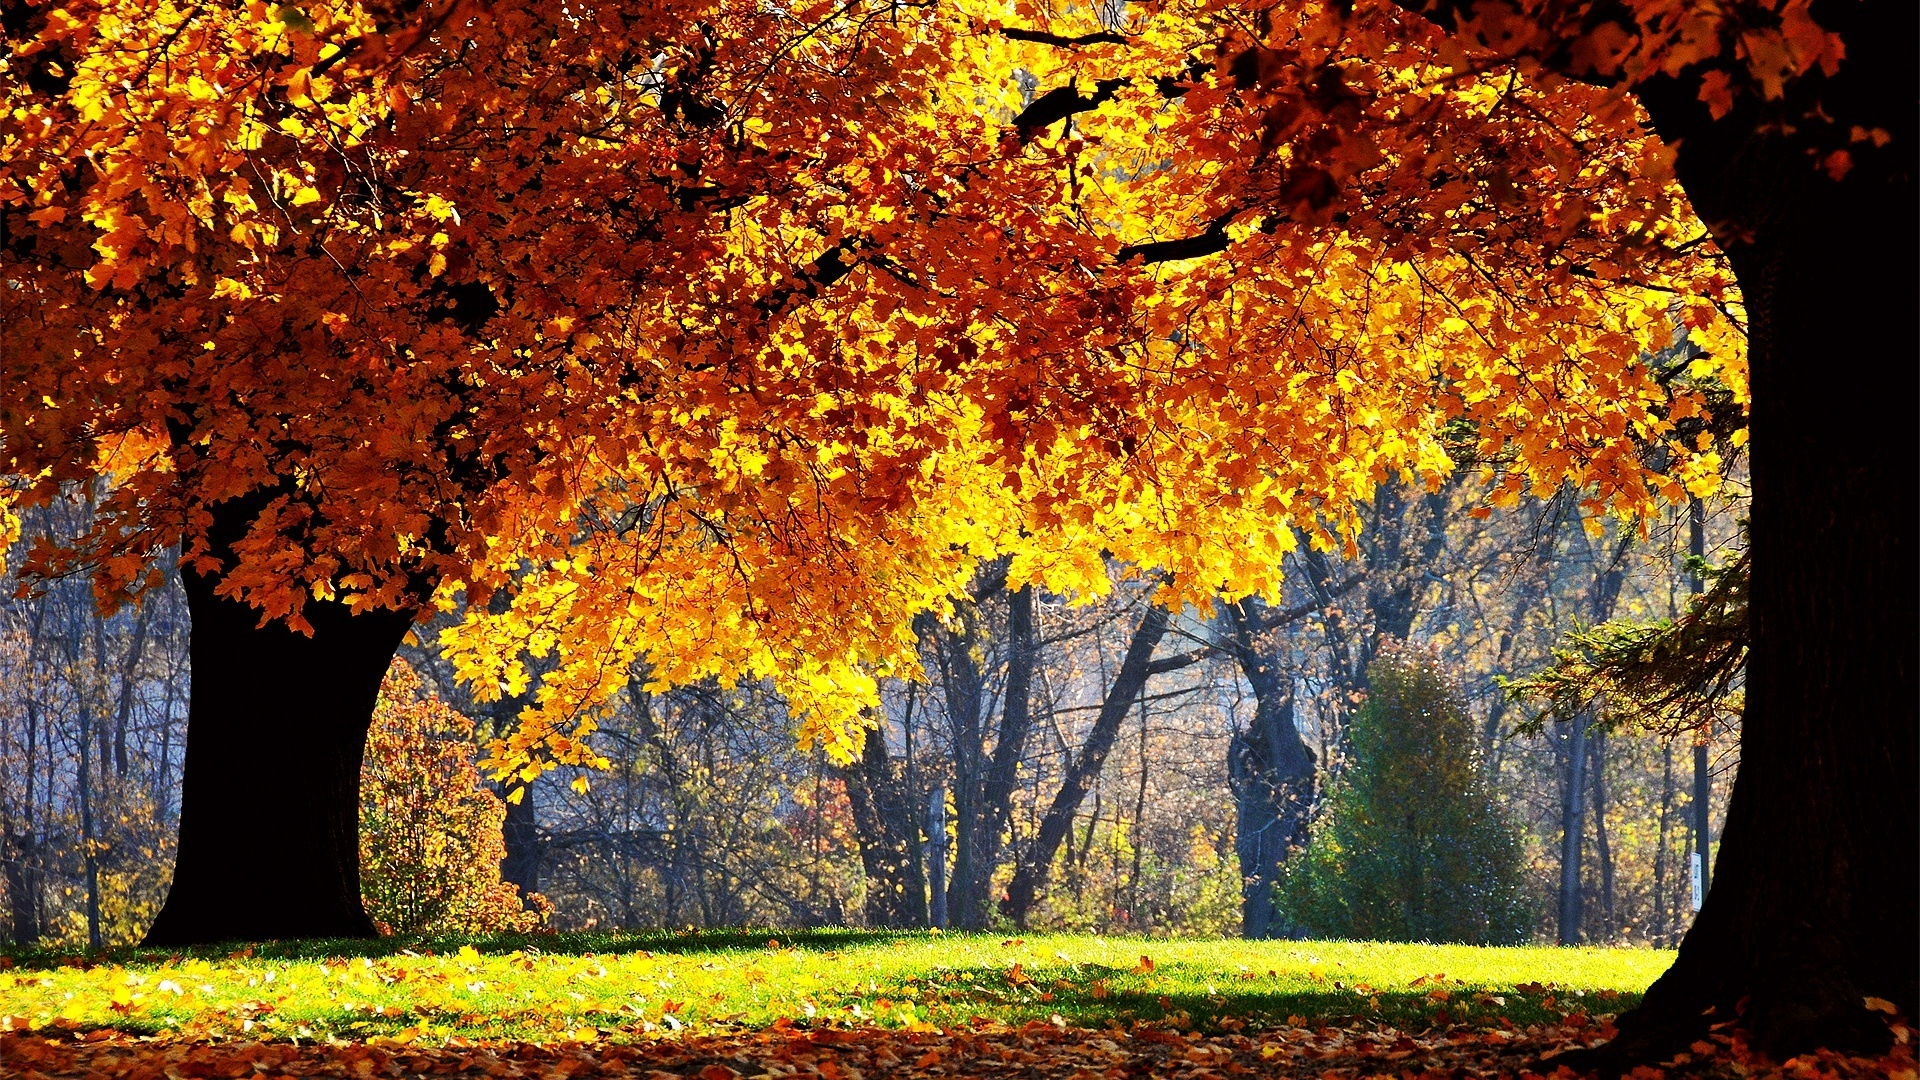 Scenery Pics Images Trees In Autumn HD Wallpaper And Background Photos